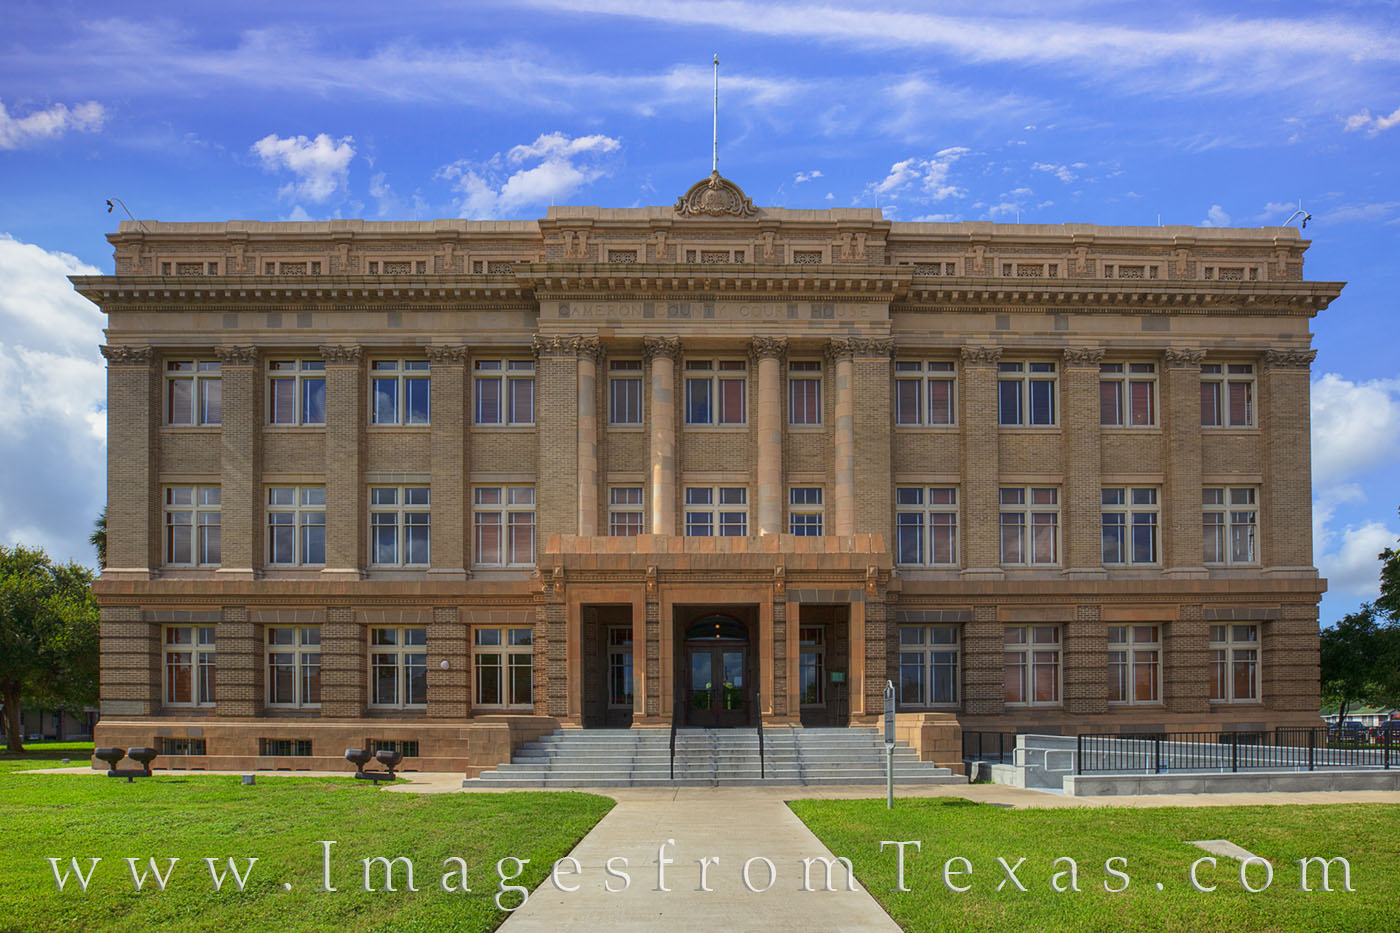 cameron county, cameron county courthouse, Judge Dancy, Brownsville courthouse, brownsville texas, south texas, border town, photo